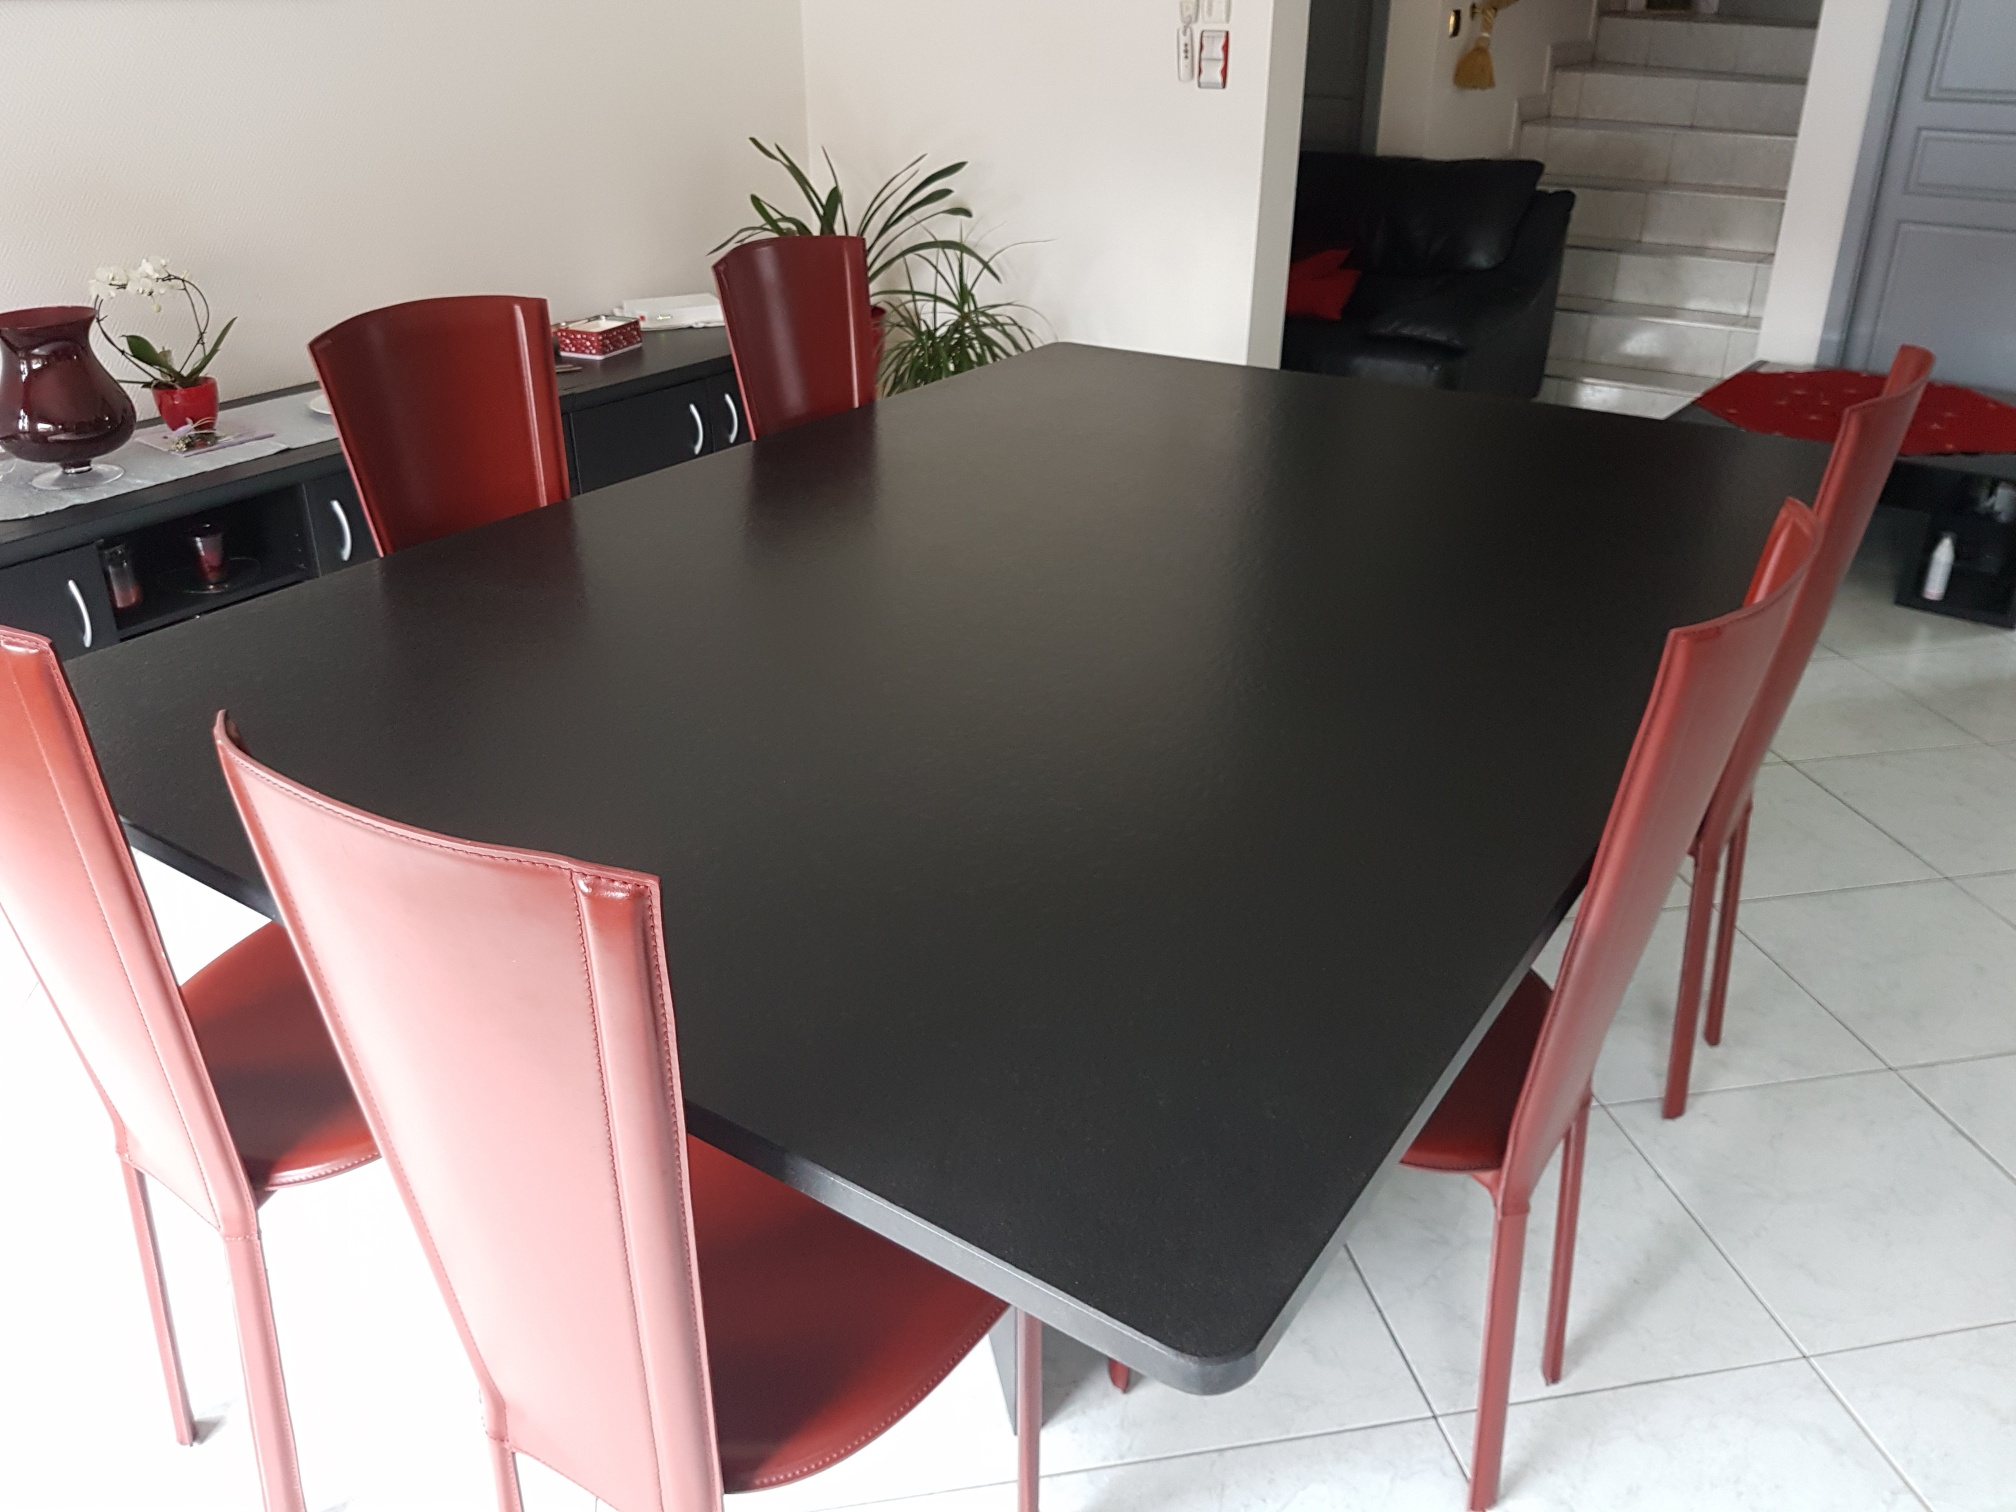 Table en granit pied en granit